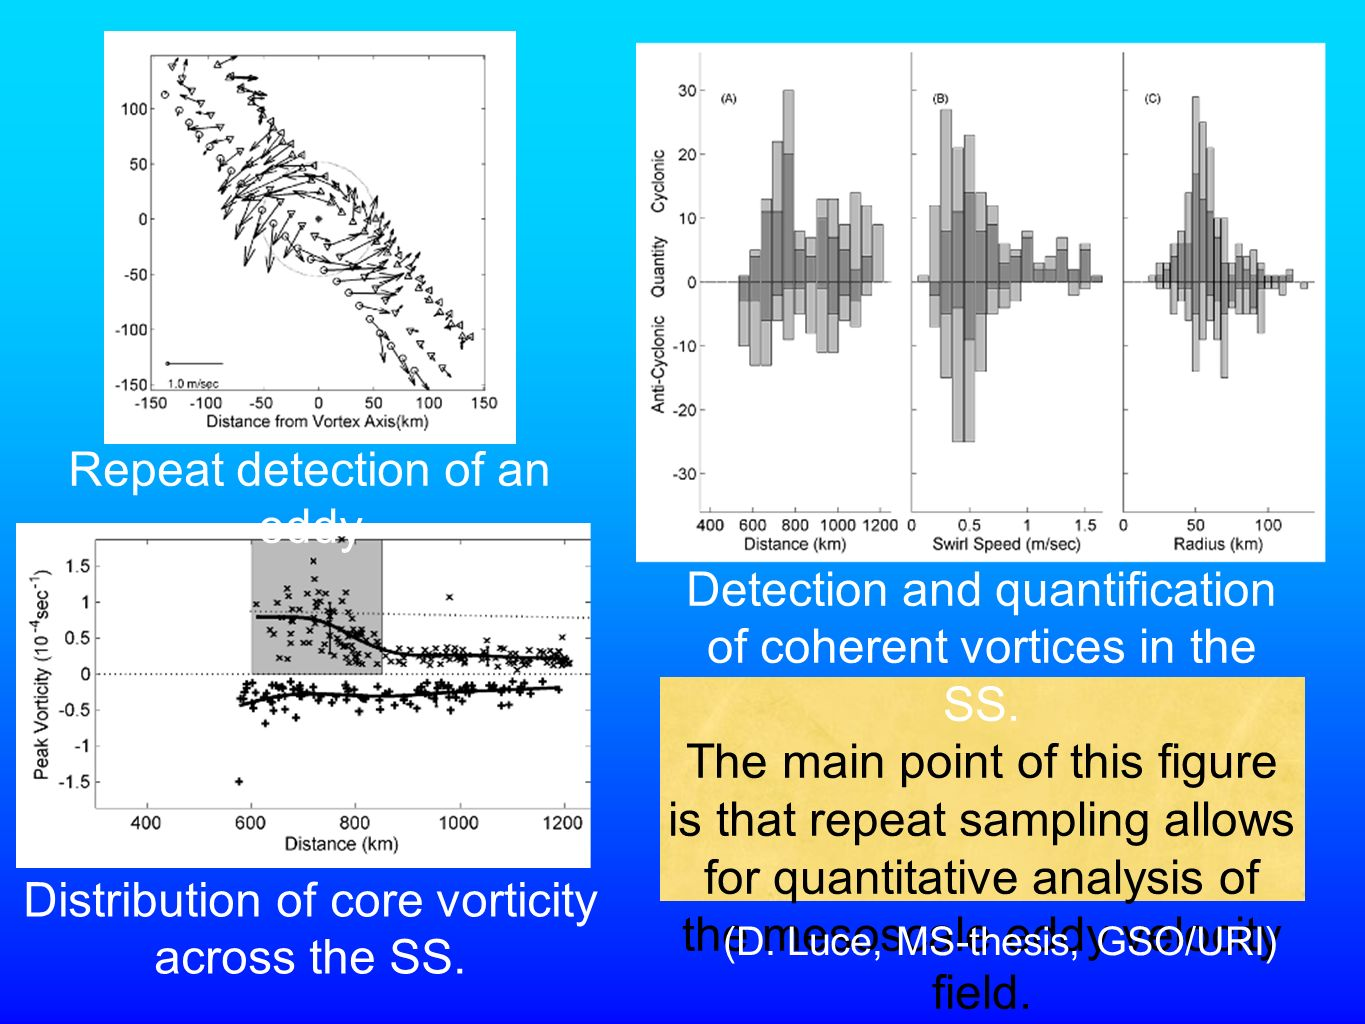 Detection and quantification of coherent vortices in the SS.